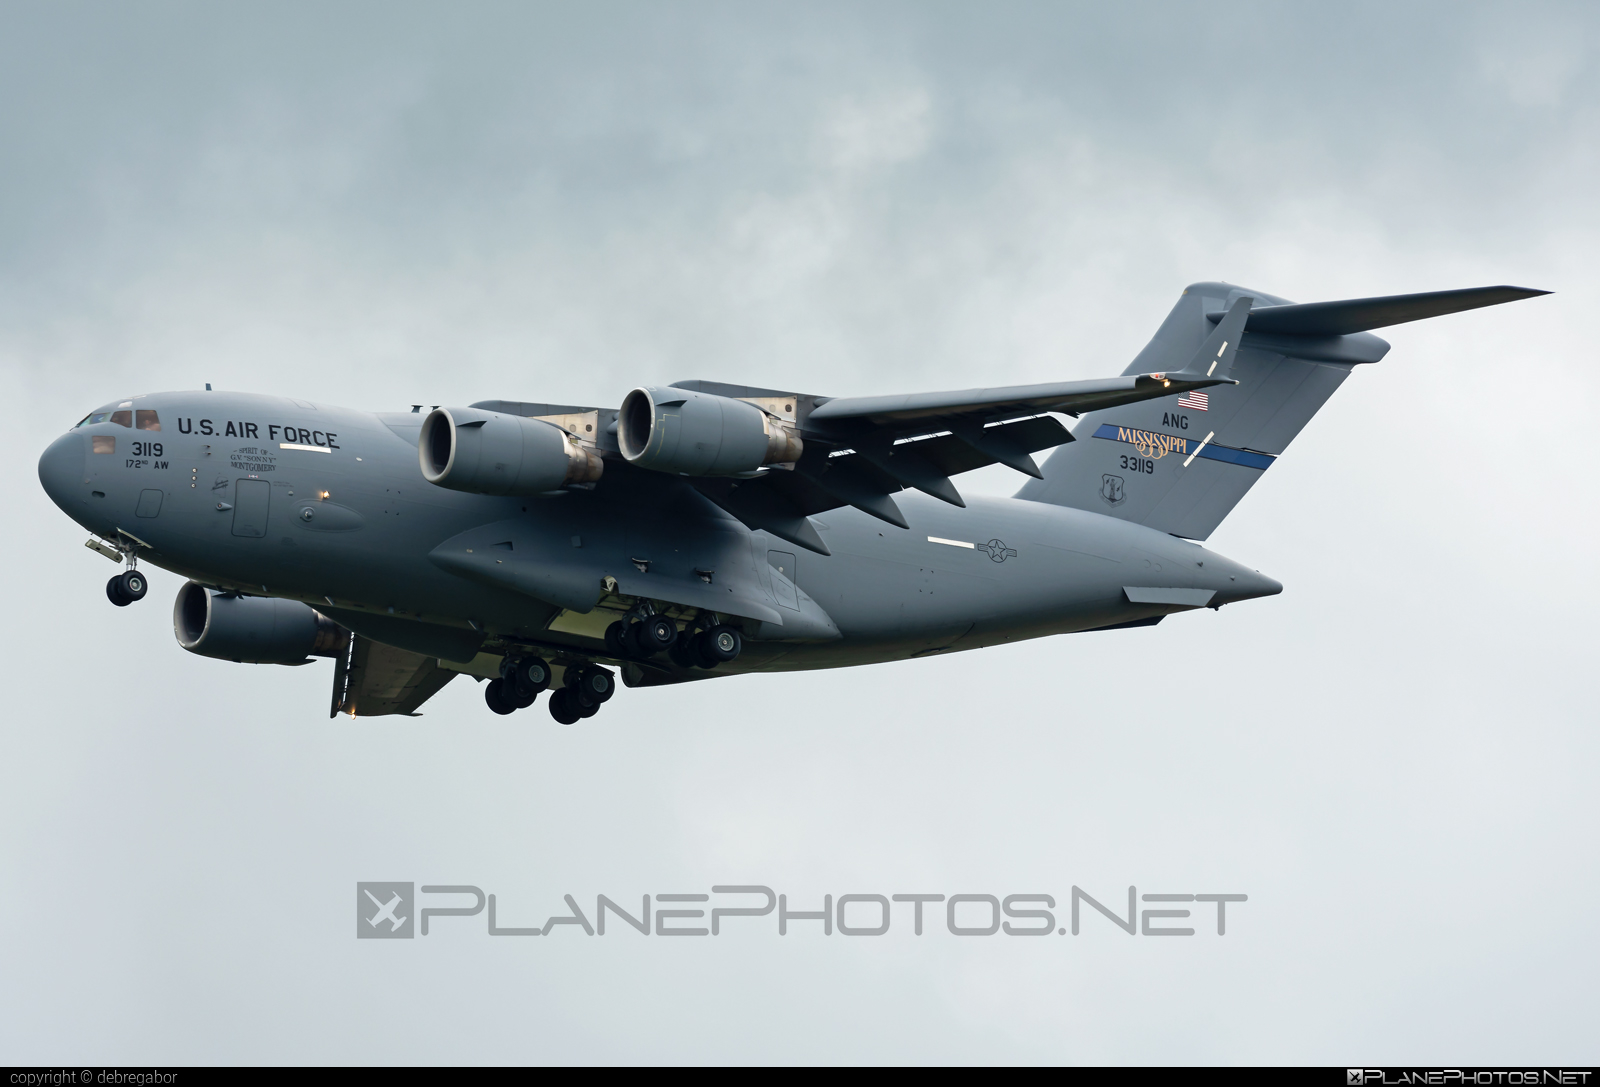 Boeing C-17A Globemaster III - 03-3119 operated by US Air Force (USAF) #boeing #c17 #c17globemaster #globemaster #globemasteriii #usaf #usairforce